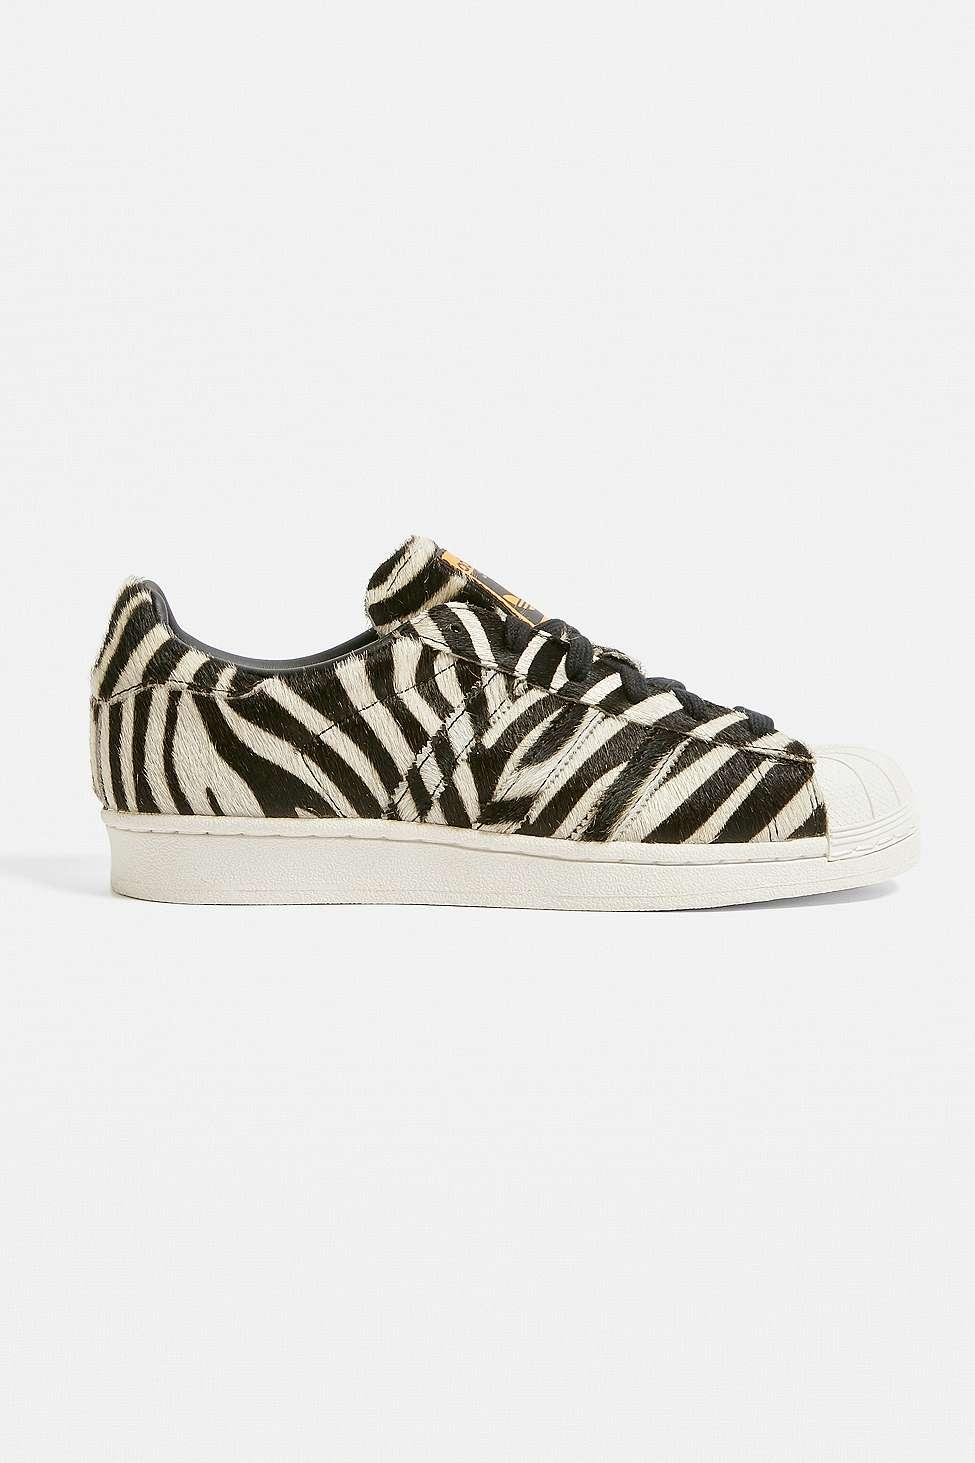 ofertas exclusivas 2020 Últimas tendencias adidas superstar zebra ir off 58% - www.skolanlar.nu